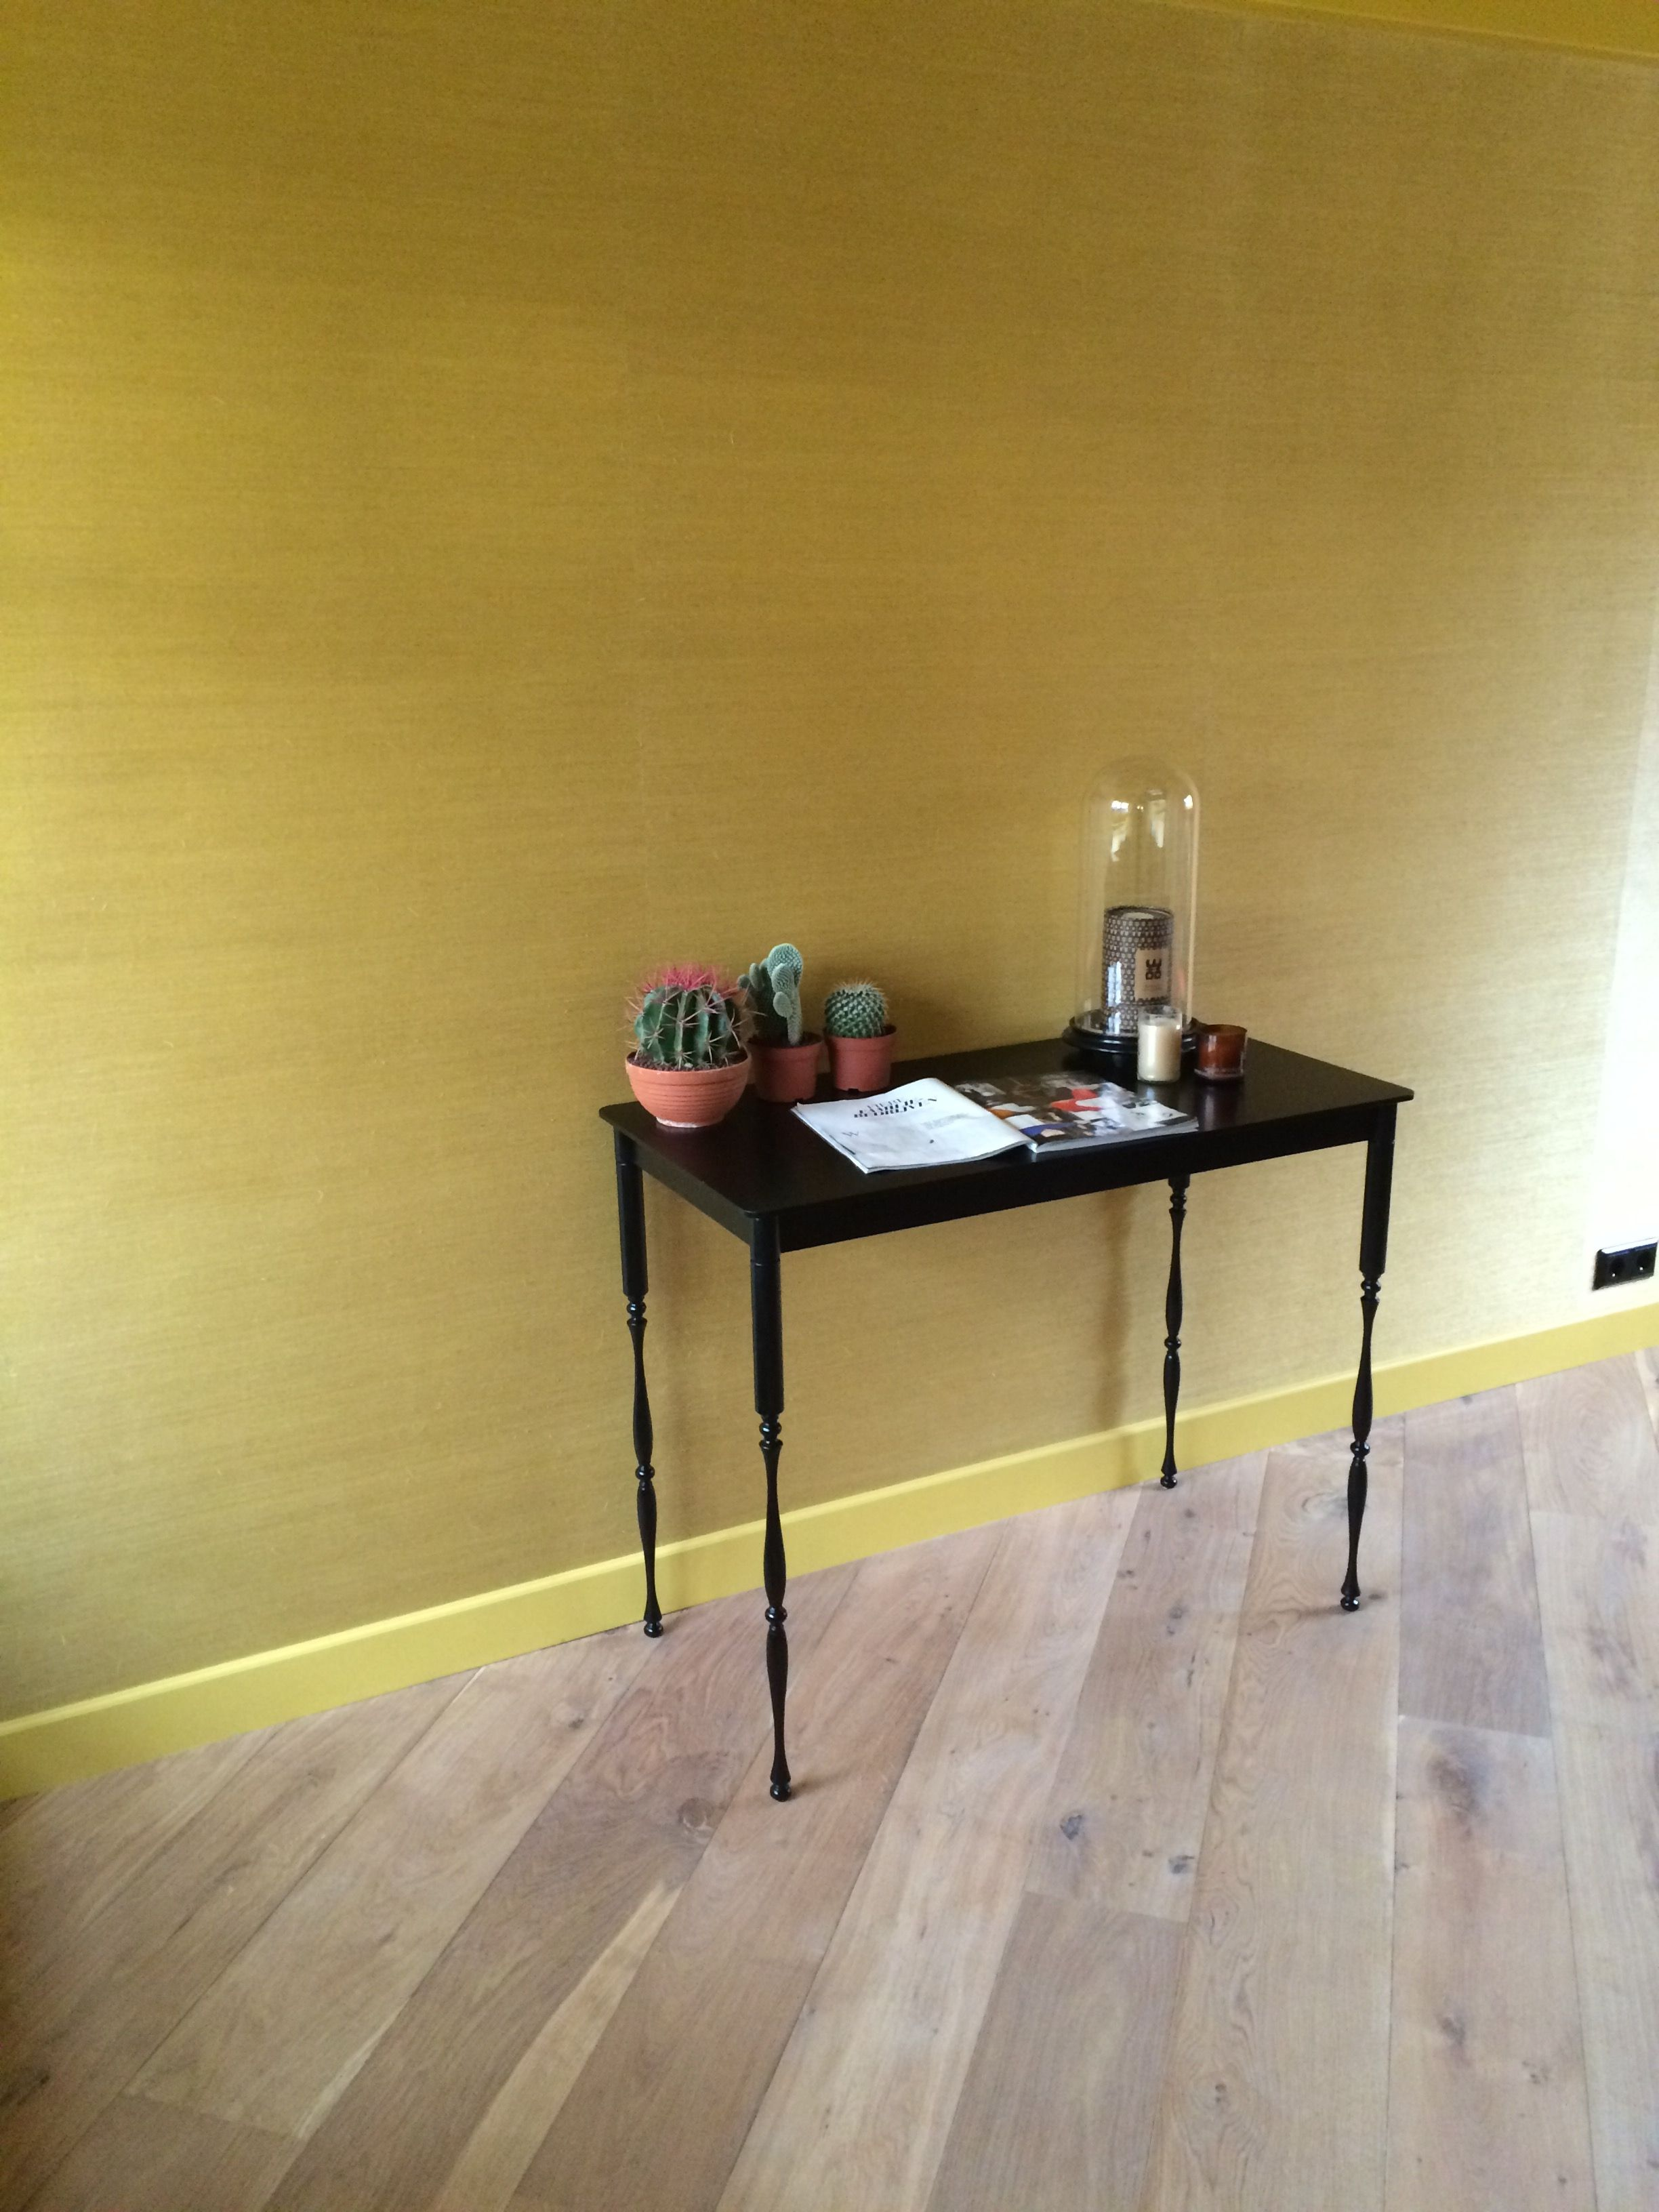 The Secretaire in the yellow room.